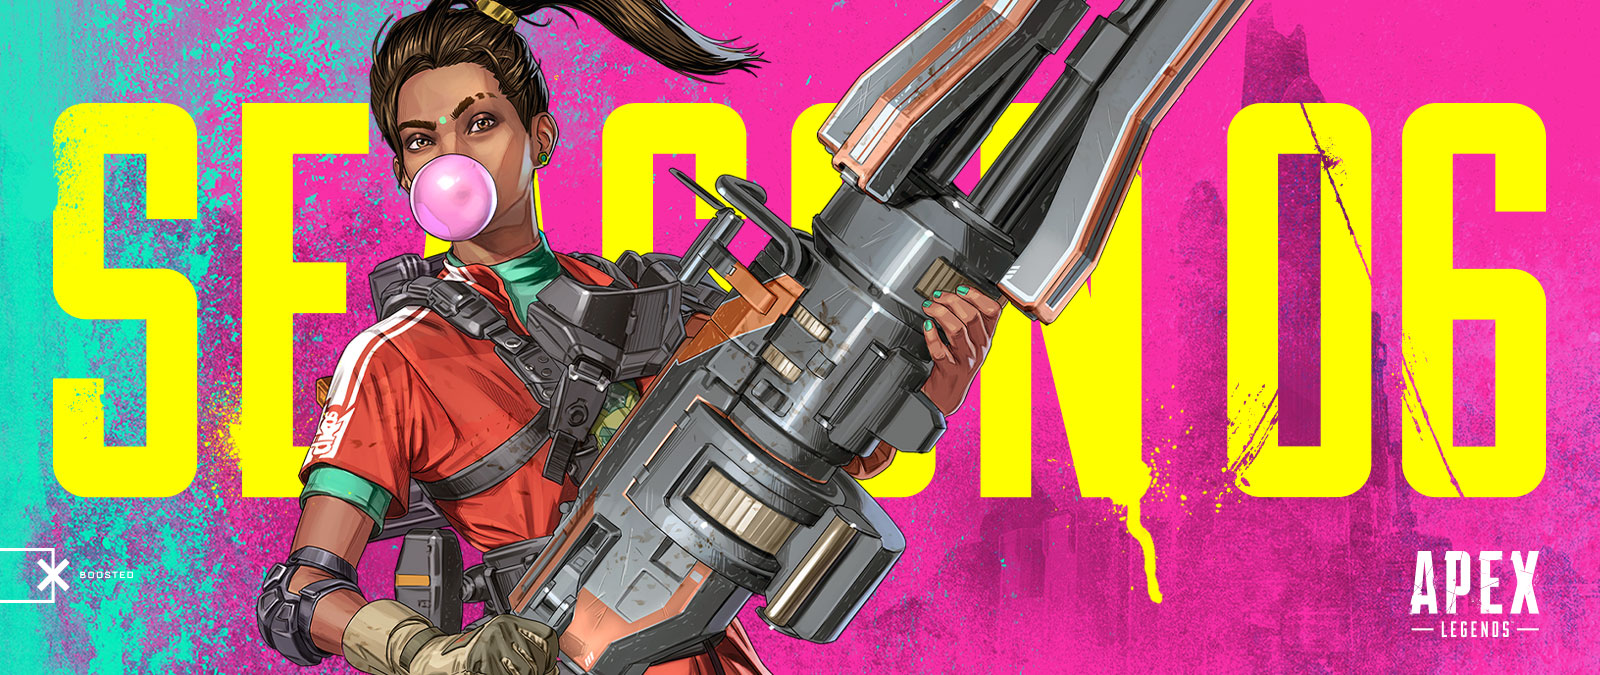 Apex Legends Season 6, New legend Rampart holds a huge gun and blows a gum bubble.